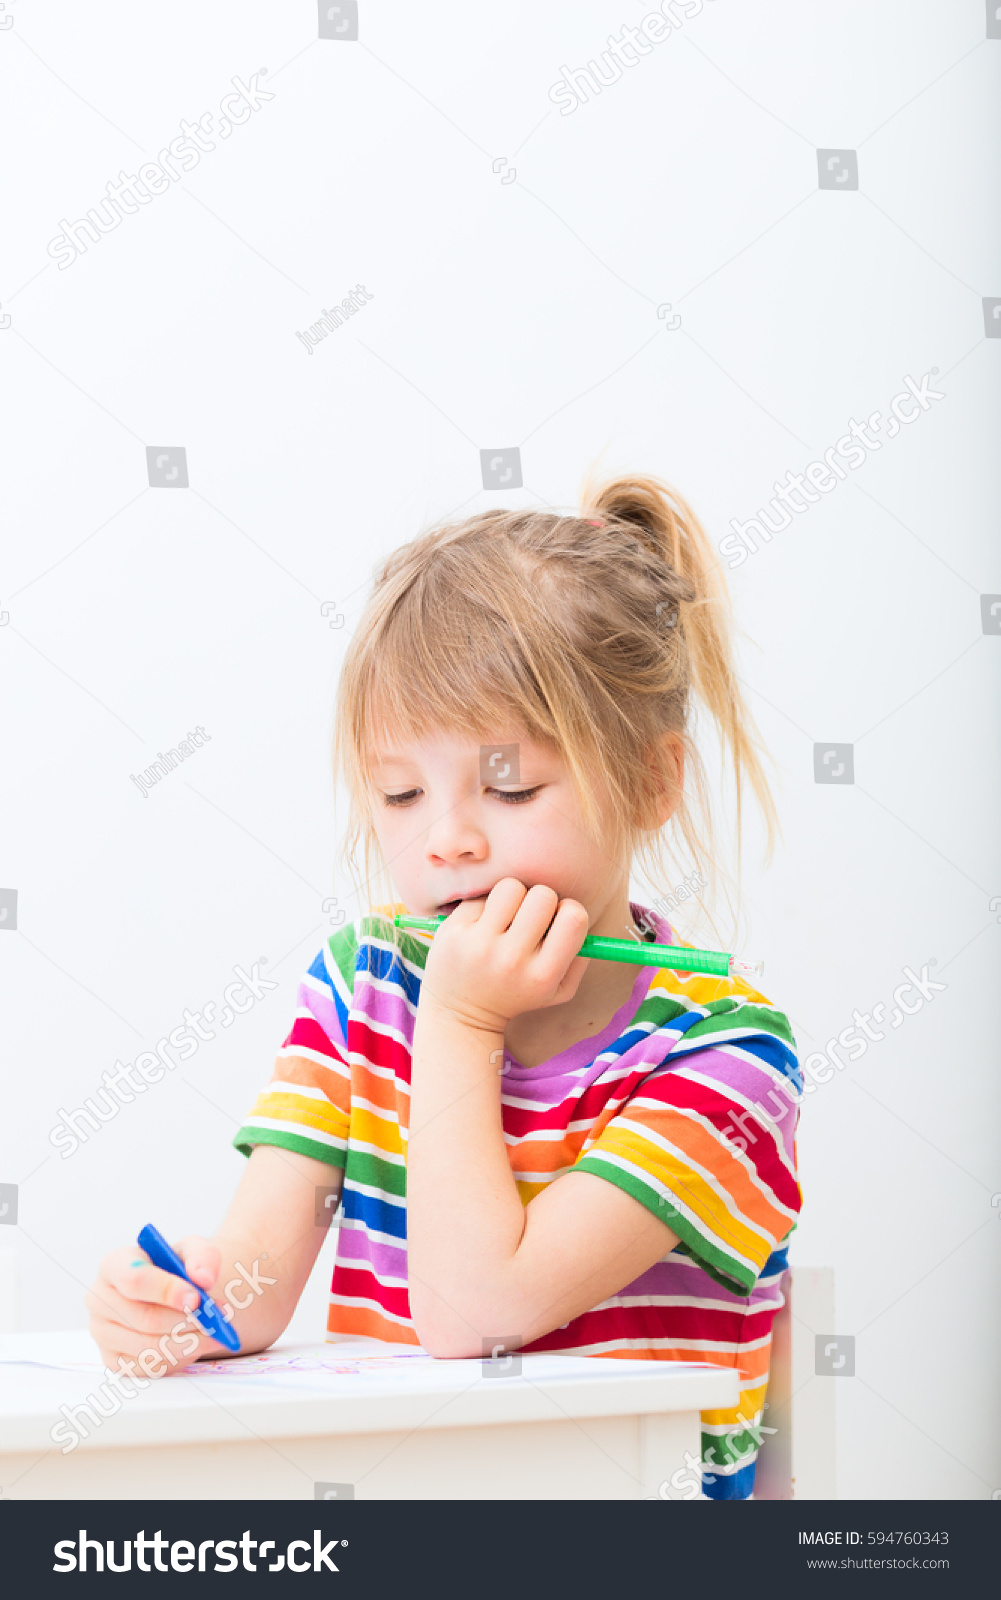 small cute girl elementary school age stock photo edit now